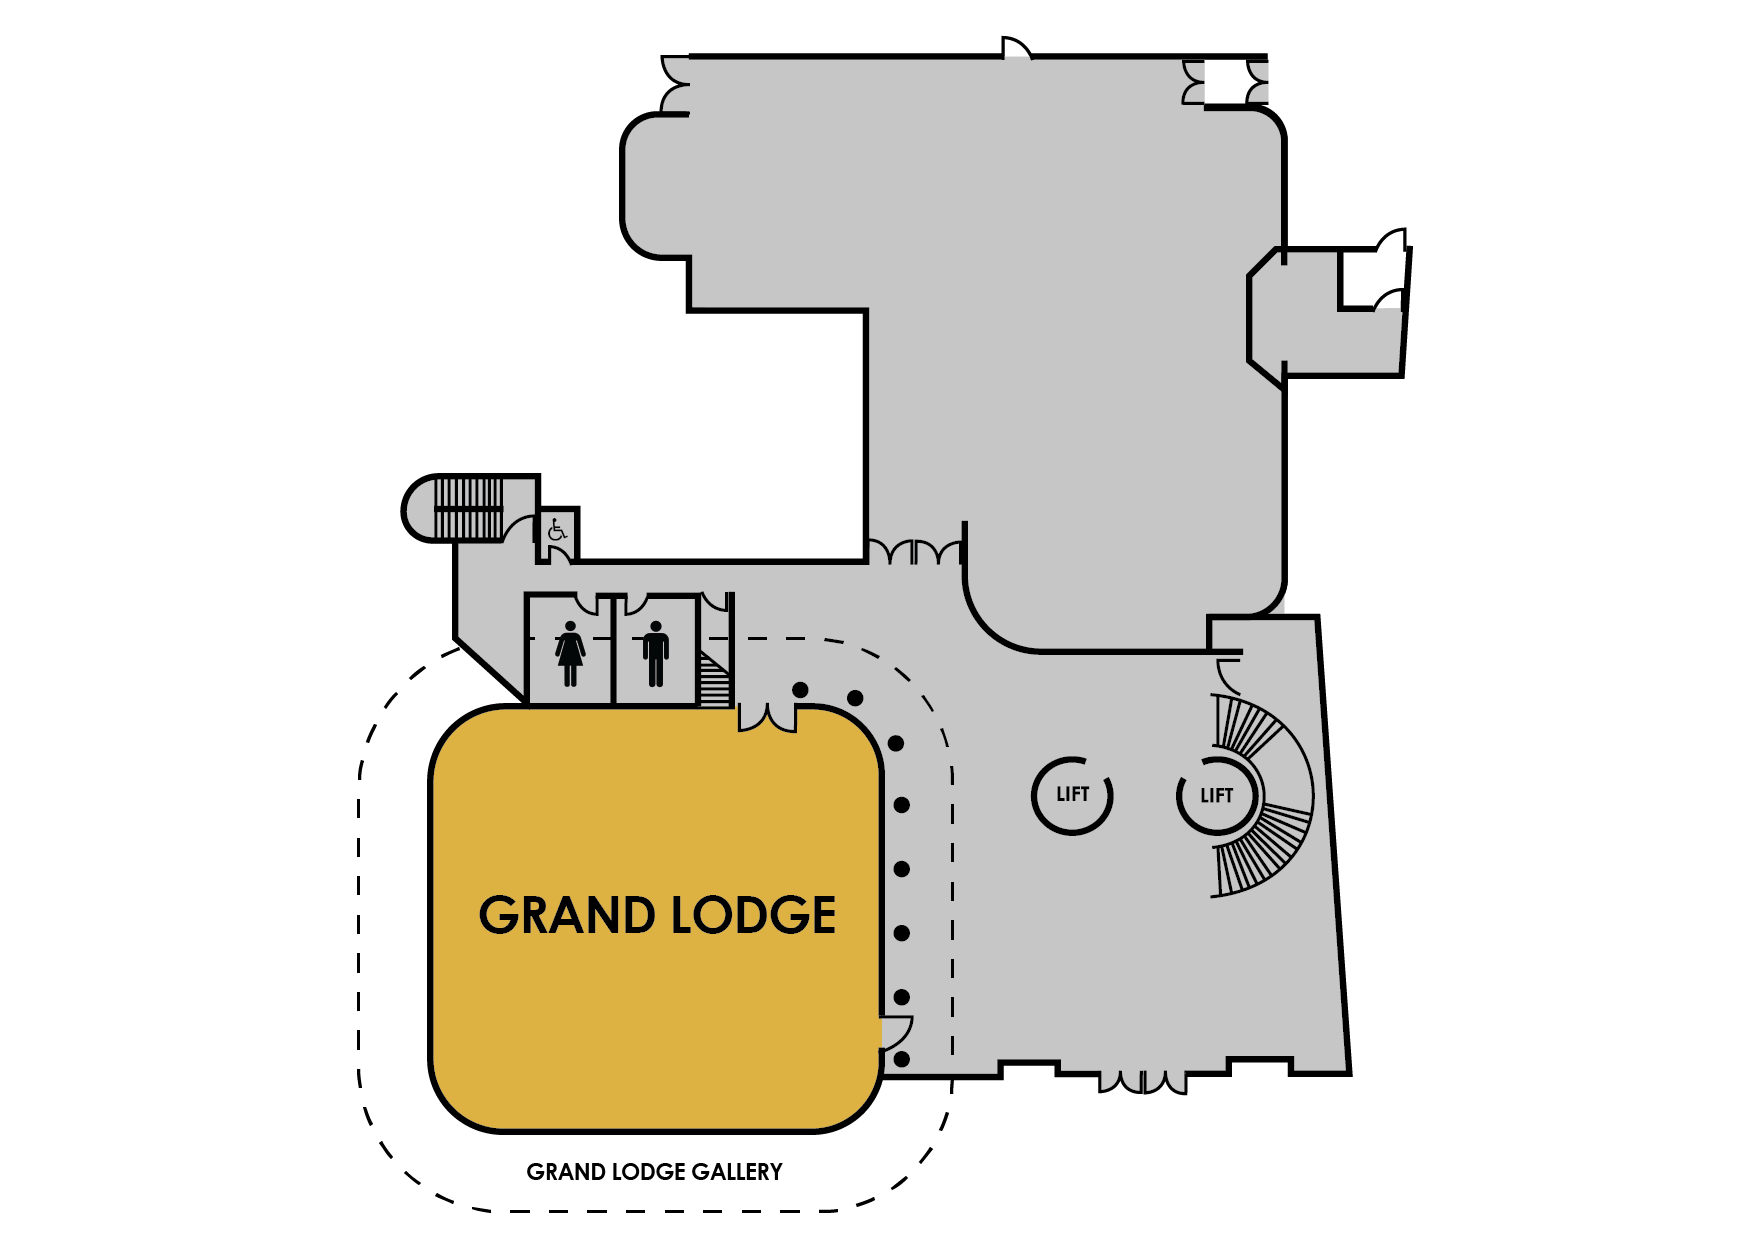 GrandLode map